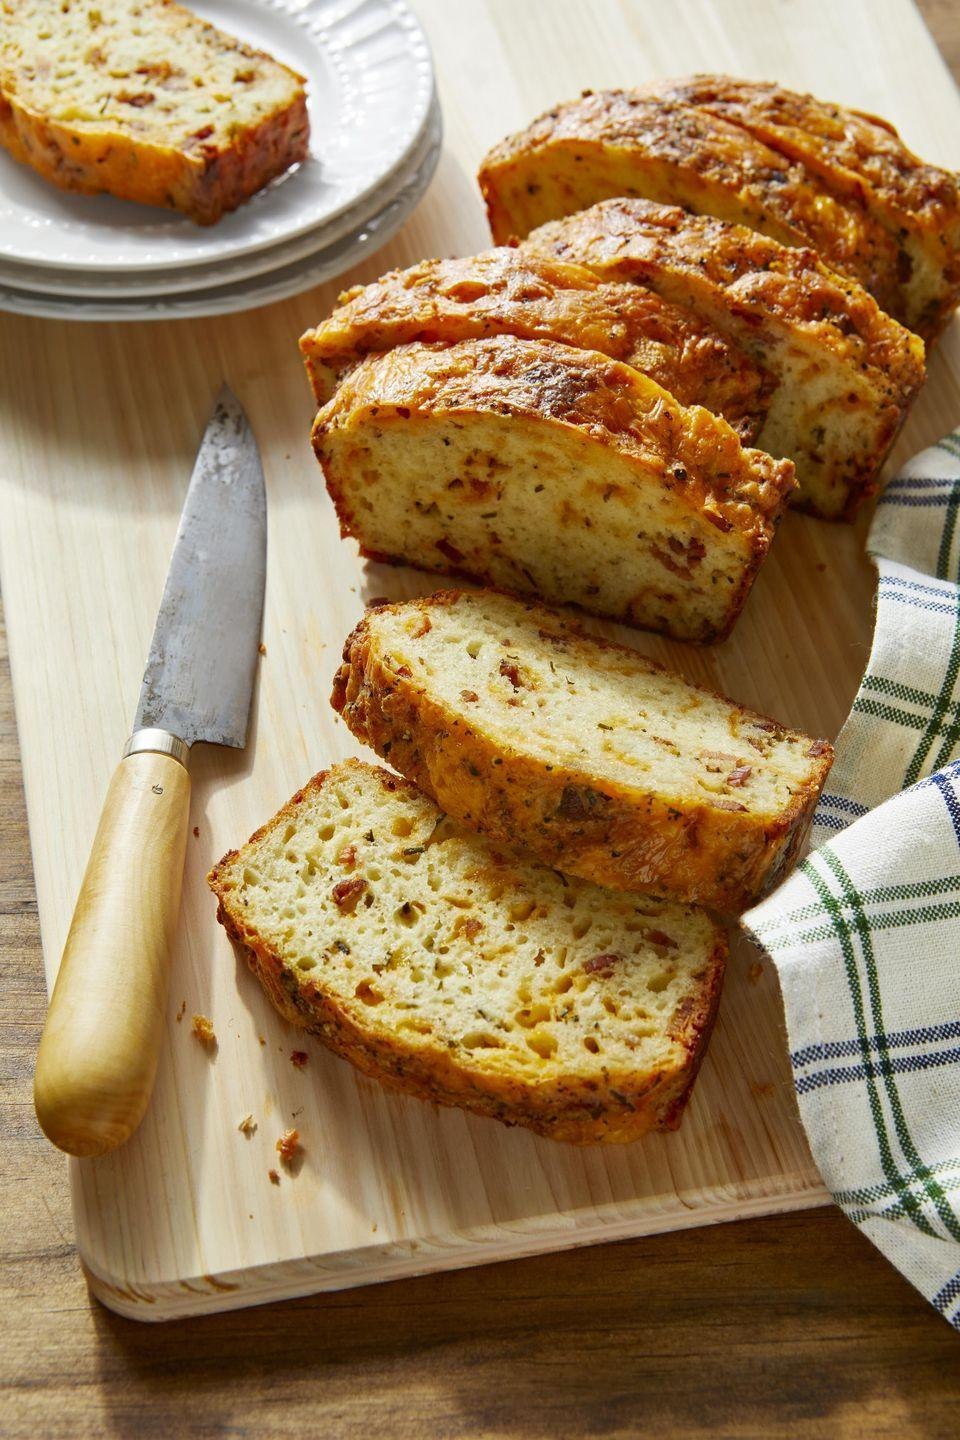 """<p>More in the mood for a savory breakfast-type treat? Bake this, and the smell will have the whole family gathered in the kitchen.</p><p><strong><a href=""""https://www.countryliving.com/food-drinks/a32213633/cheddar-bacon-and-chive-quick-bread/"""" rel=""""nofollow noopener"""" target=""""_blank"""" data-ylk=""""slk:Get the recipe"""" class=""""link rapid-noclick-resp"""">Get the recipe</a>.</strong></p><p><a class=""""link rapid-noclick-resp"""" href=""""https://www.amazon.com/USA-Pan-1140LF-Bakeware-Aluminized/dp/B0029JQEIC/?tag=syn-yahoo-20&ascsubtag=%5Bartid%7C10050.g.35246097%5Bsrc%7Cyahoo-us"""" rel=""""nofollow noopener"""" target=""""_blank"""" data-ylk=""""slk:SHOP LOAF PANS"""">SHOP LOAF PANS</a><br></p>"""